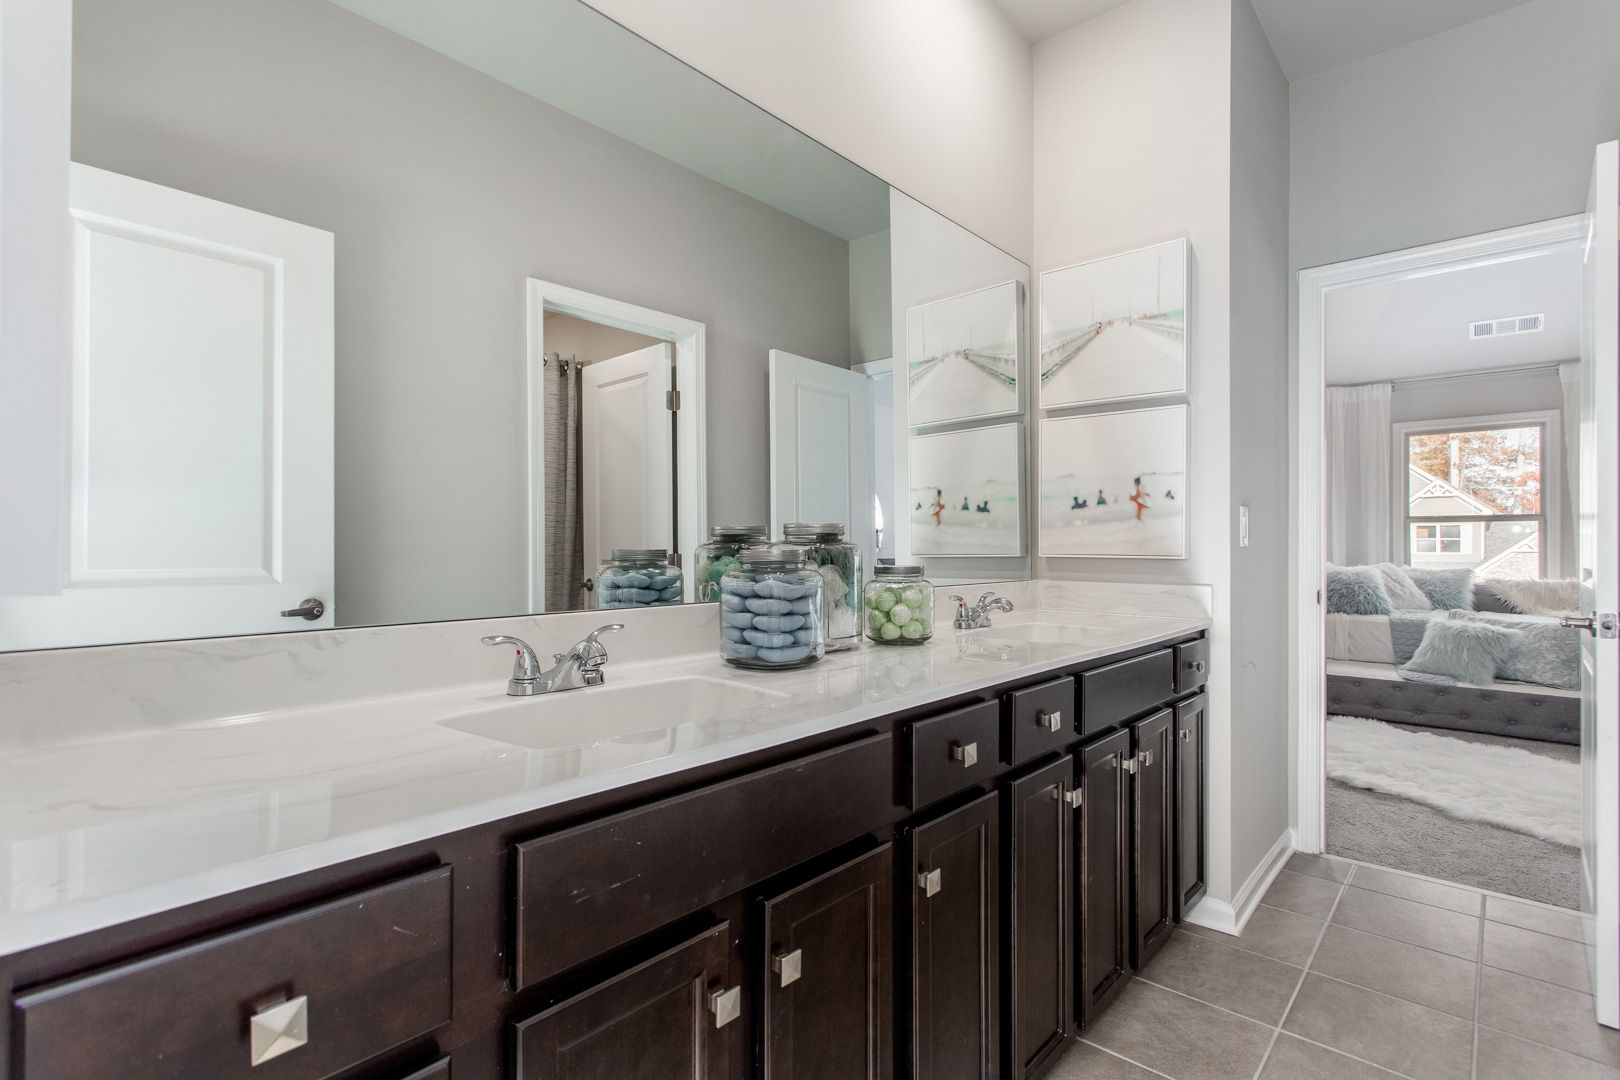 Bathroom featured in The Charleston By Almont Homes in Atlanta, GA